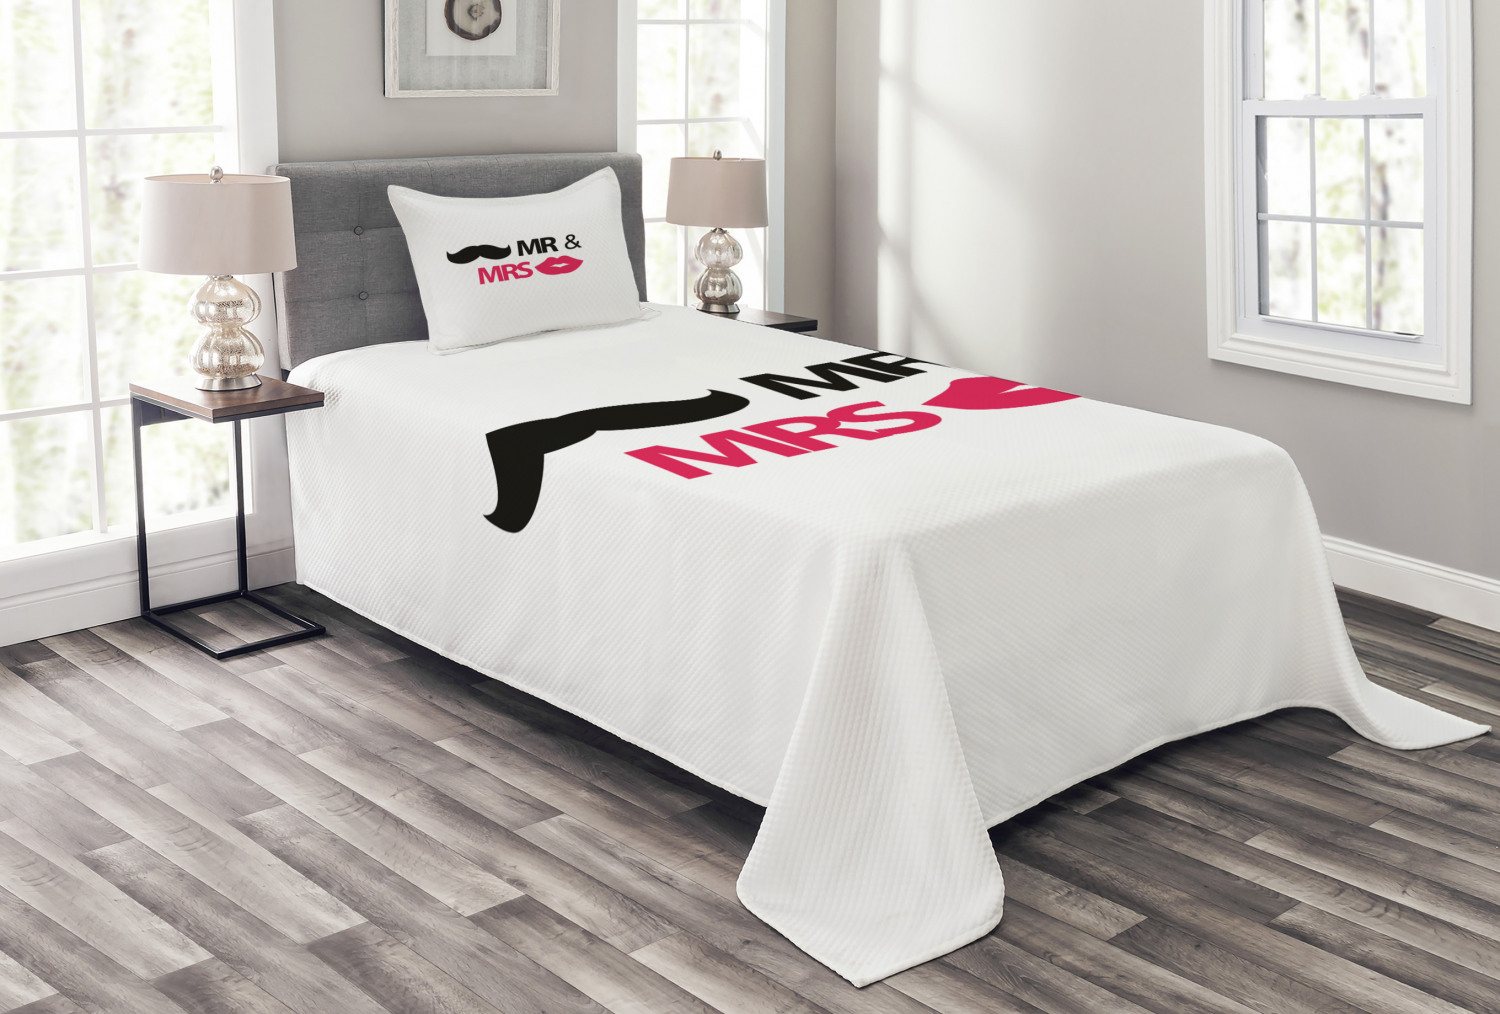 Wedding Bedspread Set Funny Stencil Art Lips Moustache Mr And Mrs Retro Stylized Design Art Print Decorative Quilted Coverlet Set With Pillow Shams Included Black Pink White By Ambesonne Walmart Com